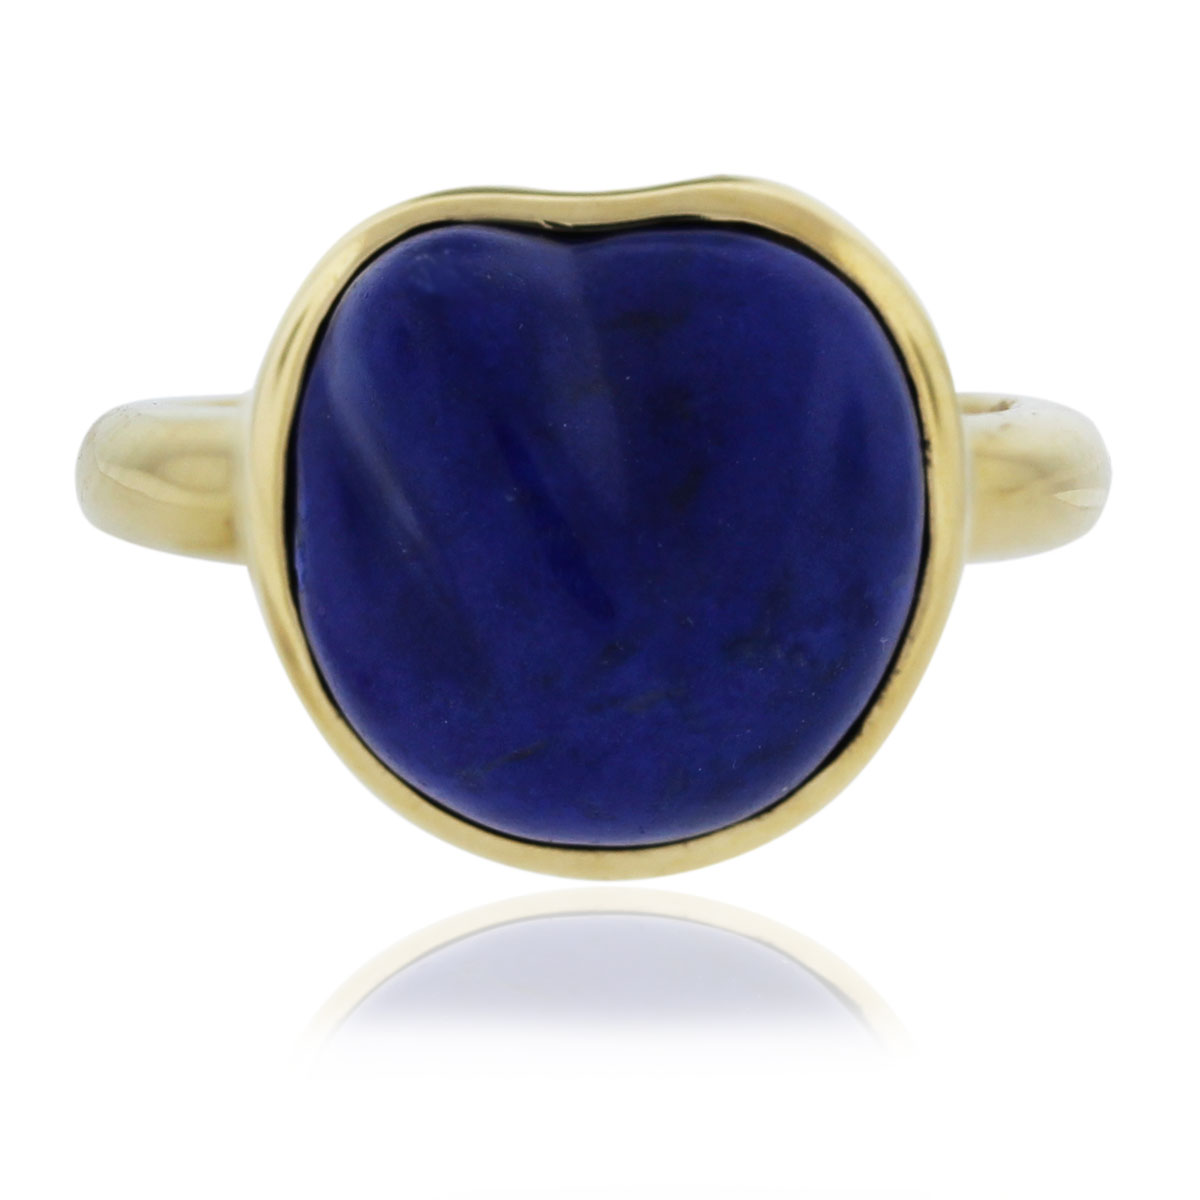 Tiffany and Co. 18kt Yellow Gold Elsa Peretti Lapis Ring